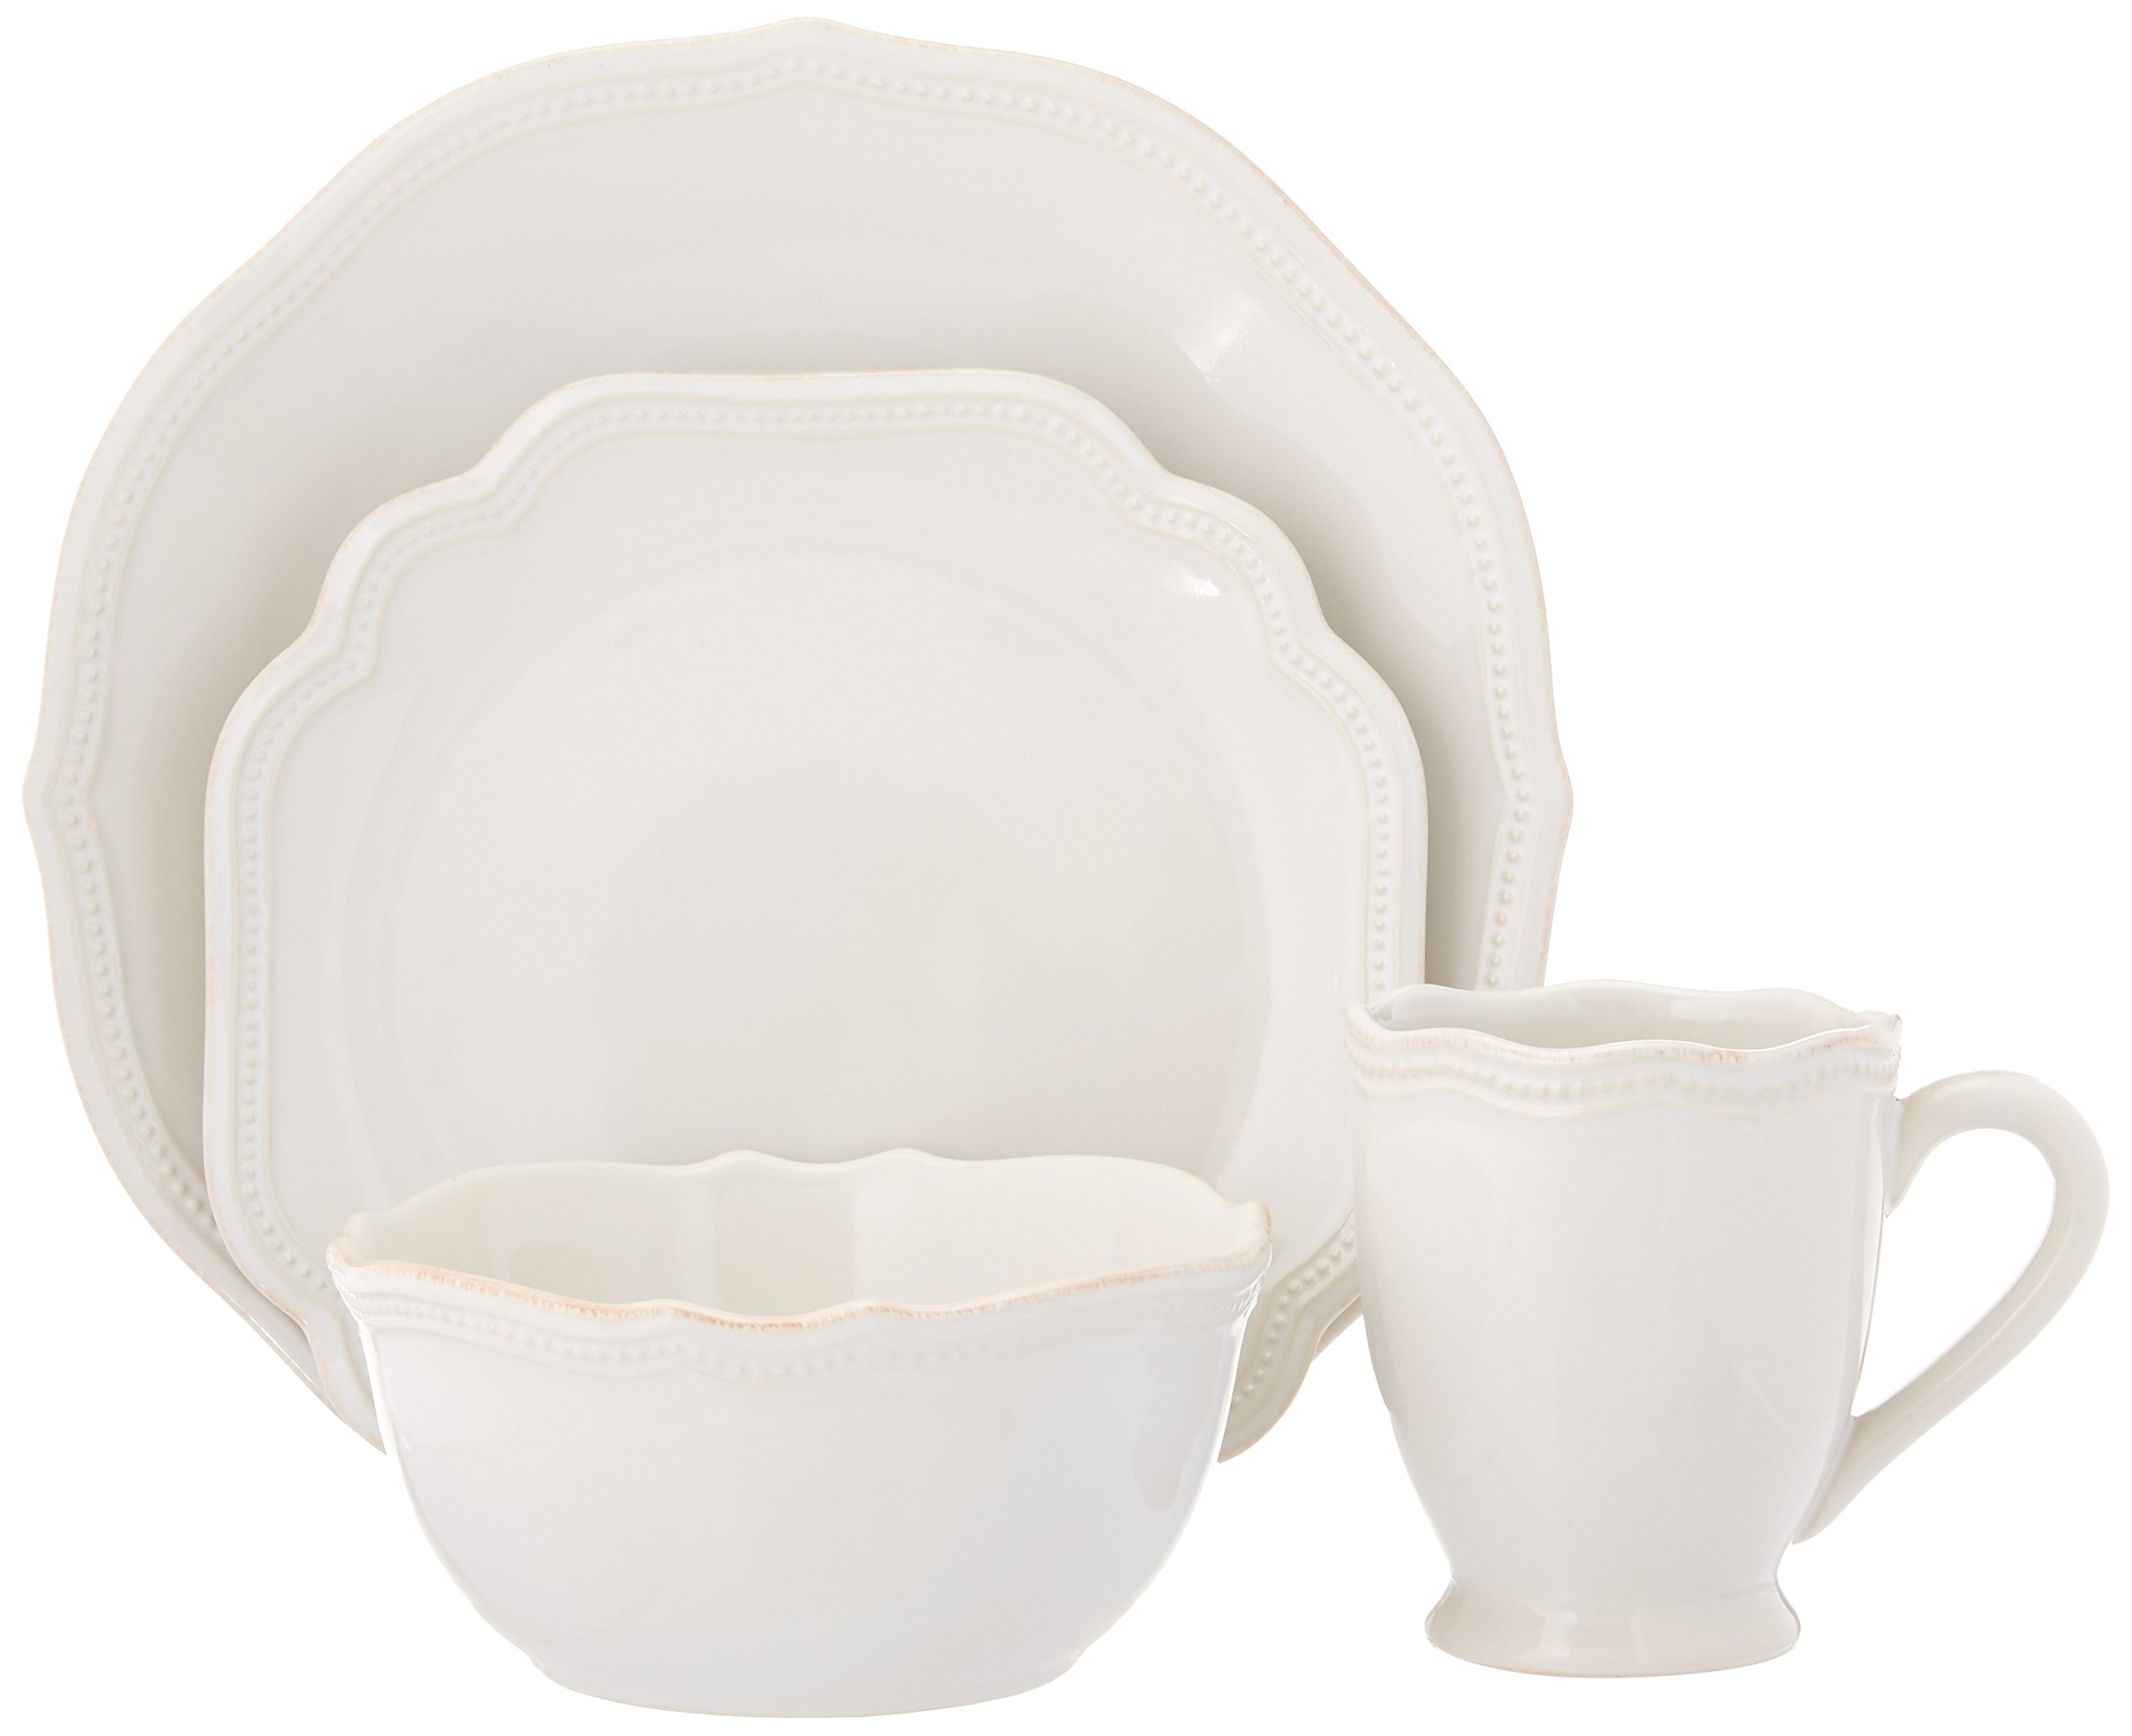 Lenox 4-Piece French Perle Bead Dinner Set, White by Lenox